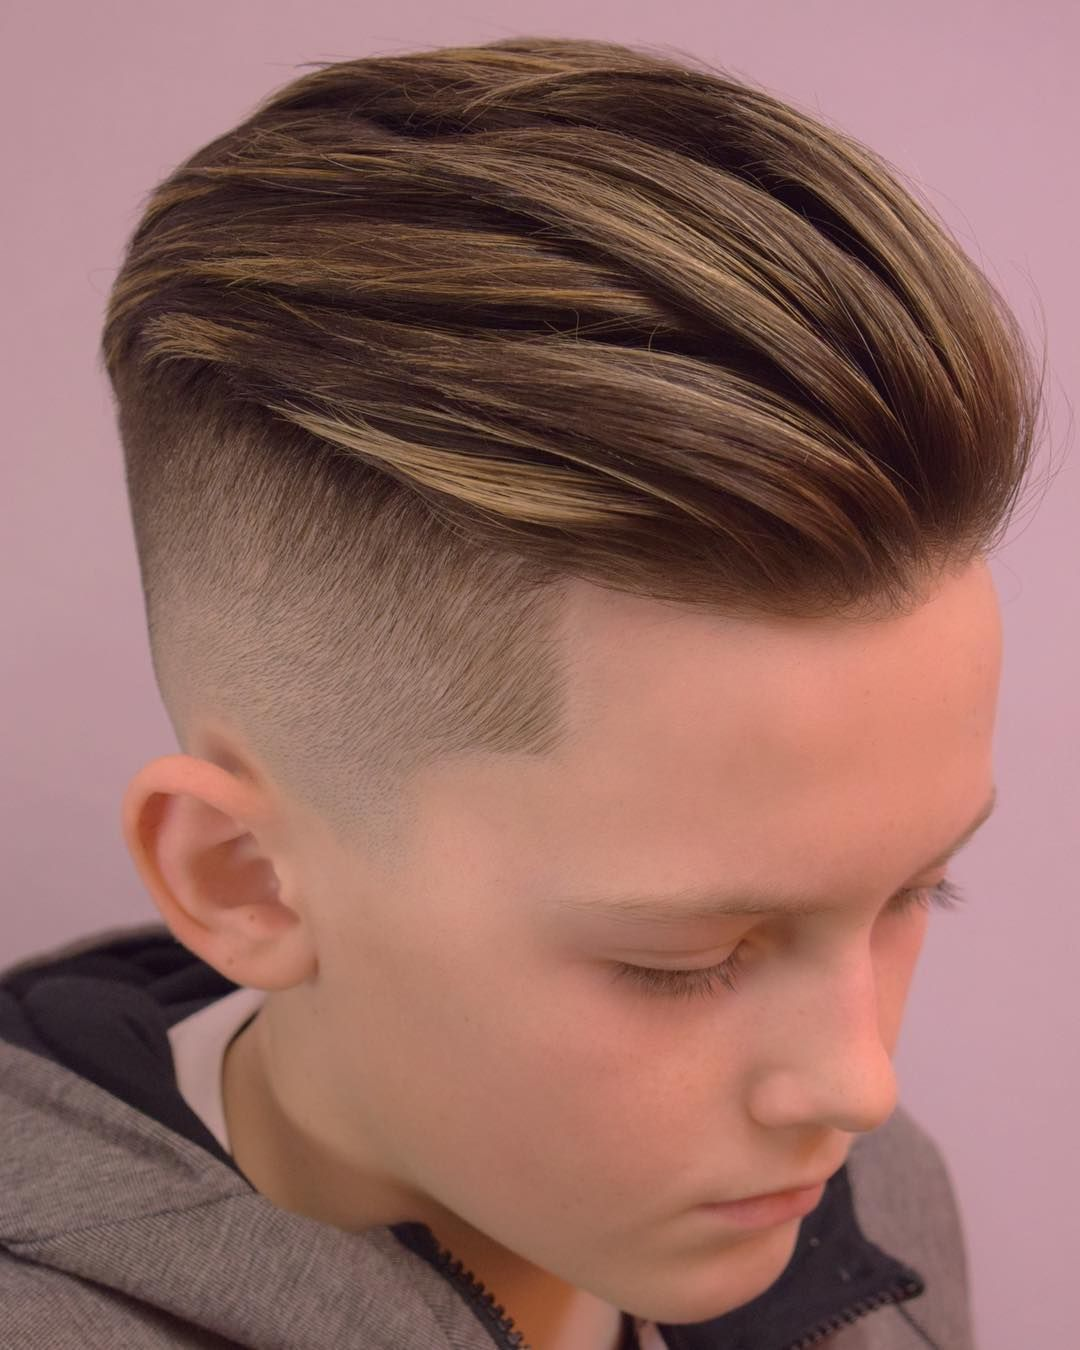 undercuts hairstyles boys | textured hairstyles & haircuts